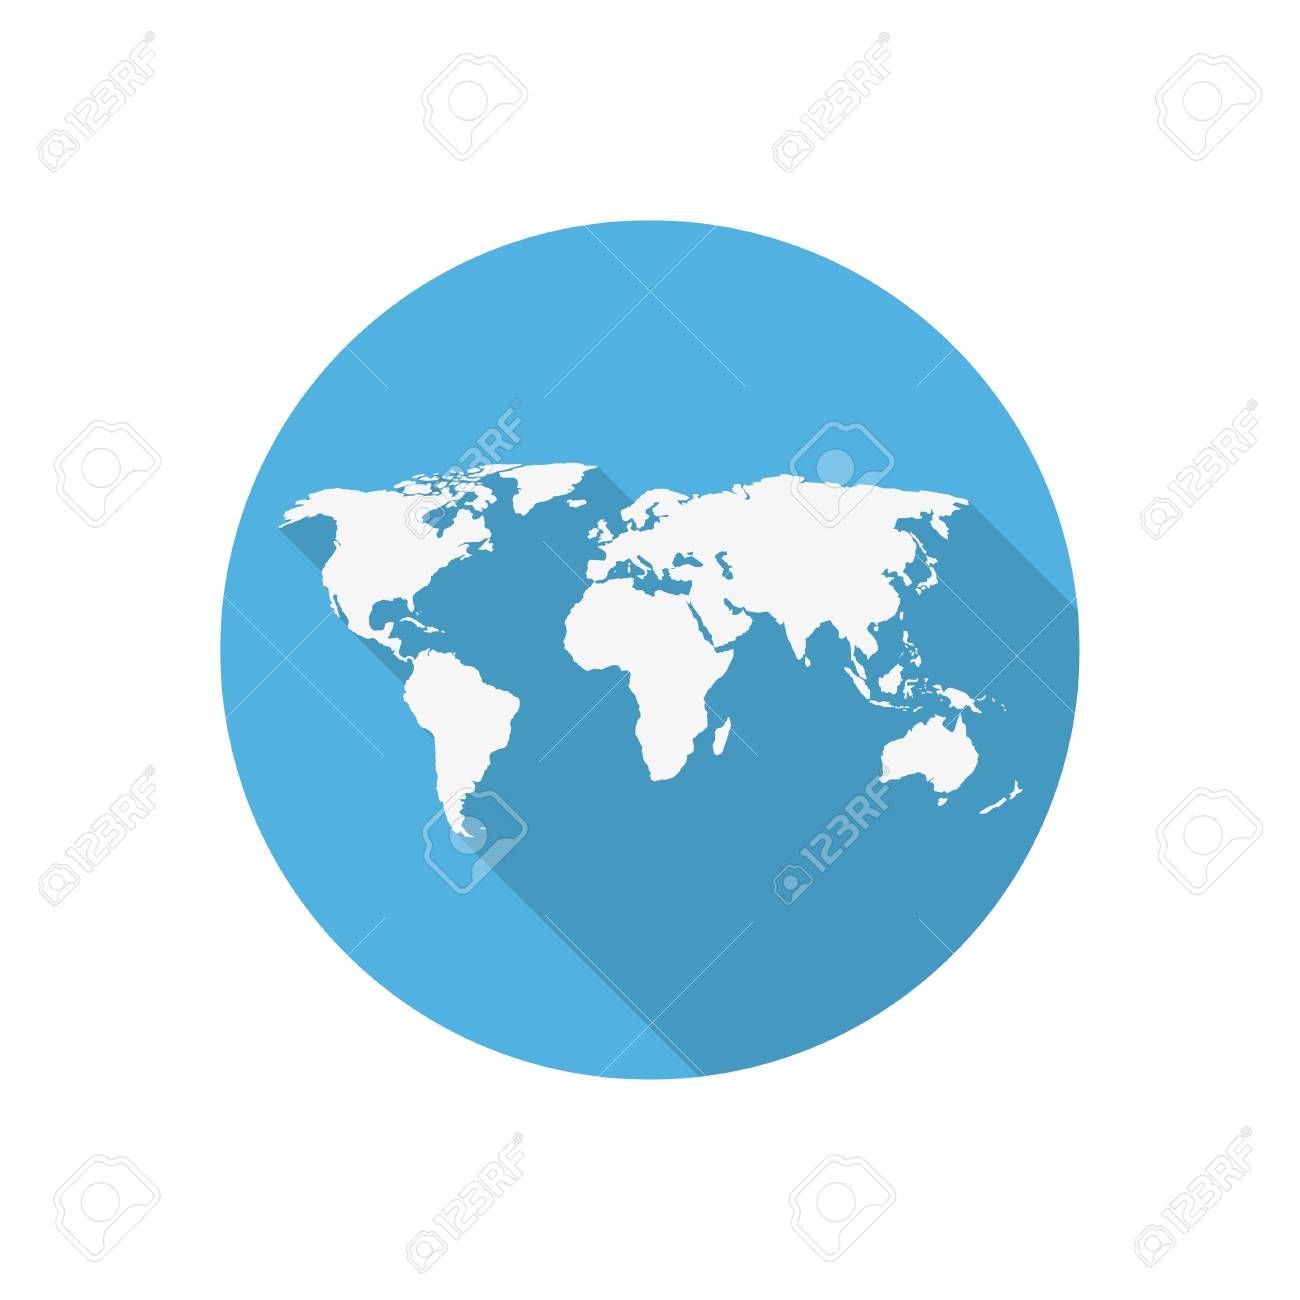 Icon world map on a blue circle in a flat design ilustraciones icon world map on a blue circle in a flat design foto de archivo 49503507 gumiabroncs Choice Image